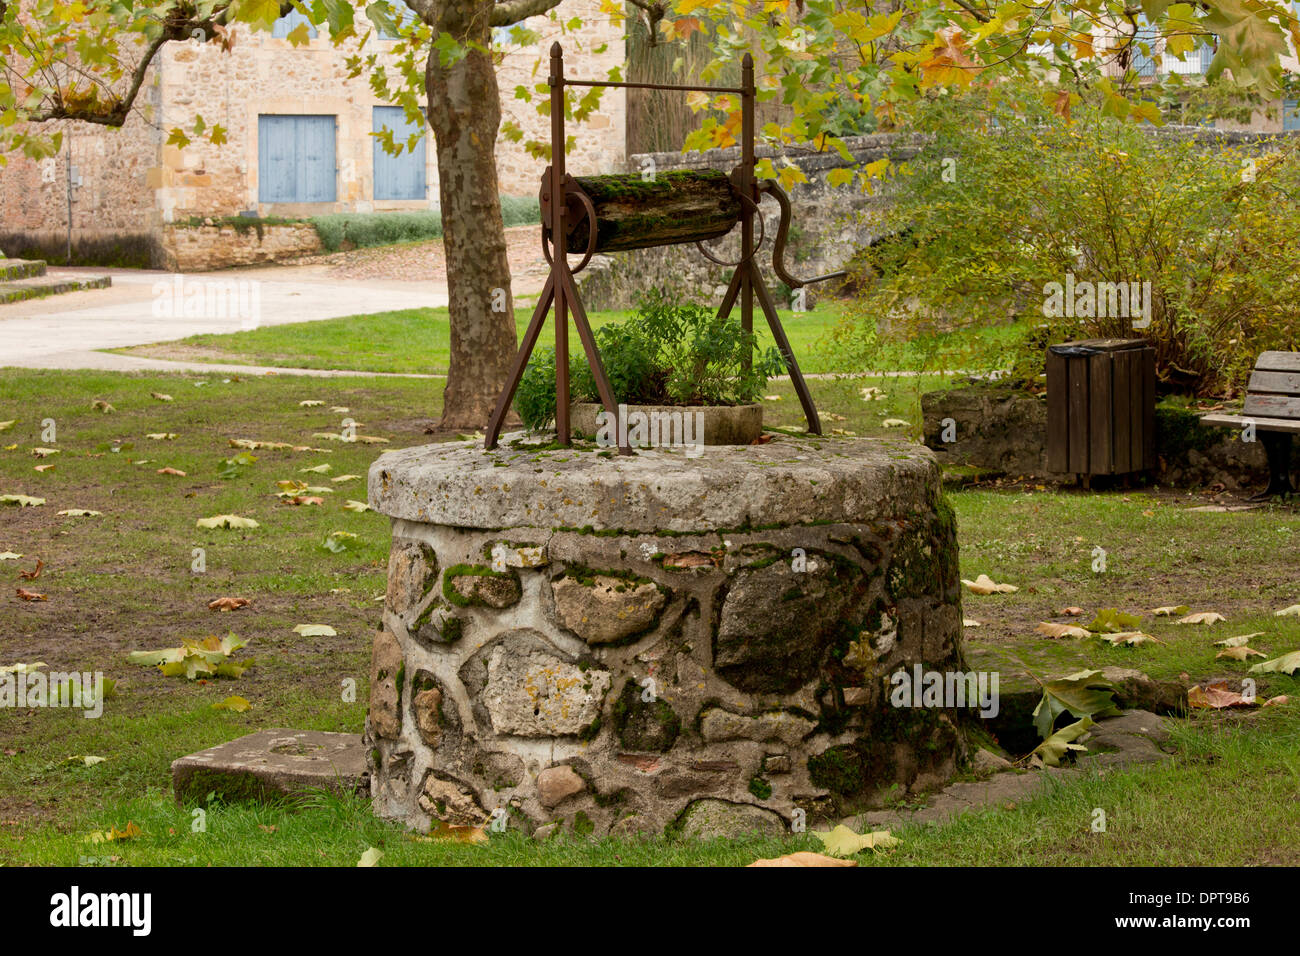 Old well in the ancient village of St Jean de Cole, Dordogne, France. - Stock Image